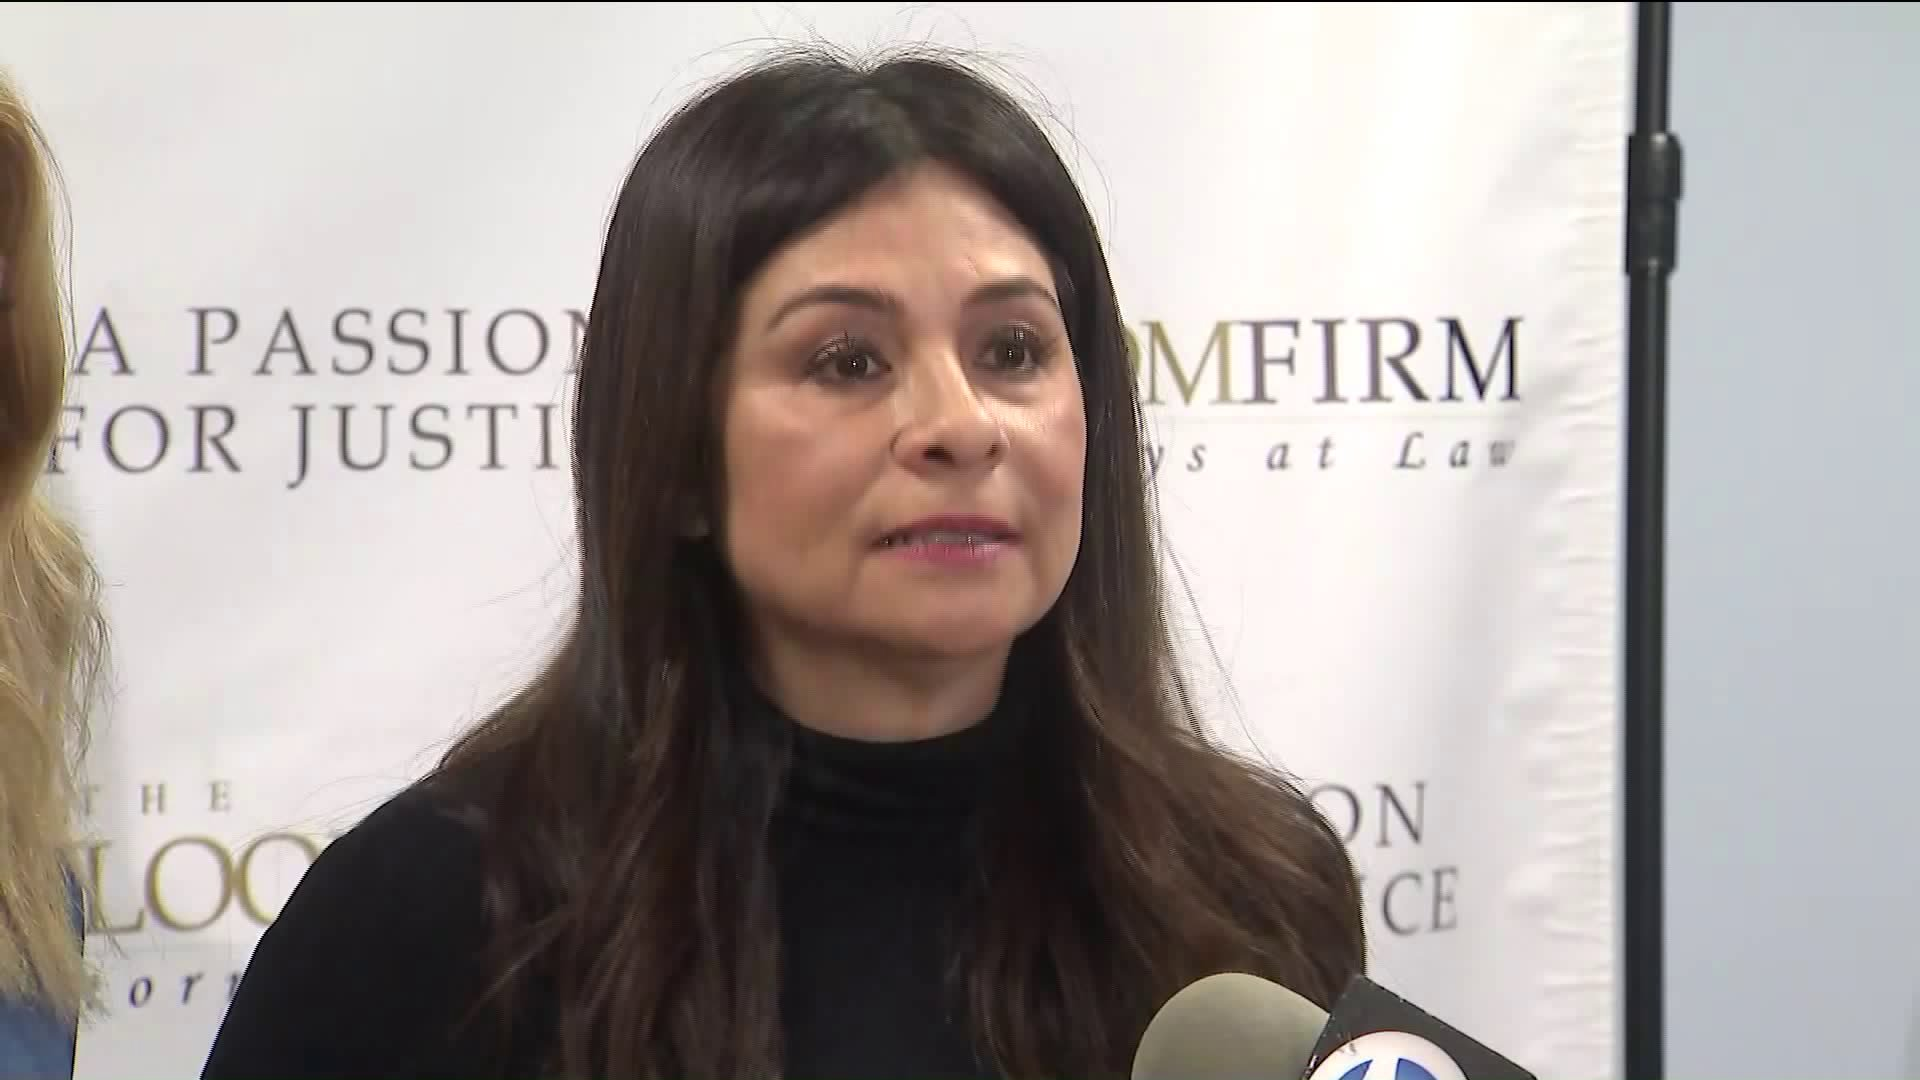 LAPD Det. Ysabel Villegas speaks to reporters on March 6, 2019. (Credit: KTLA)